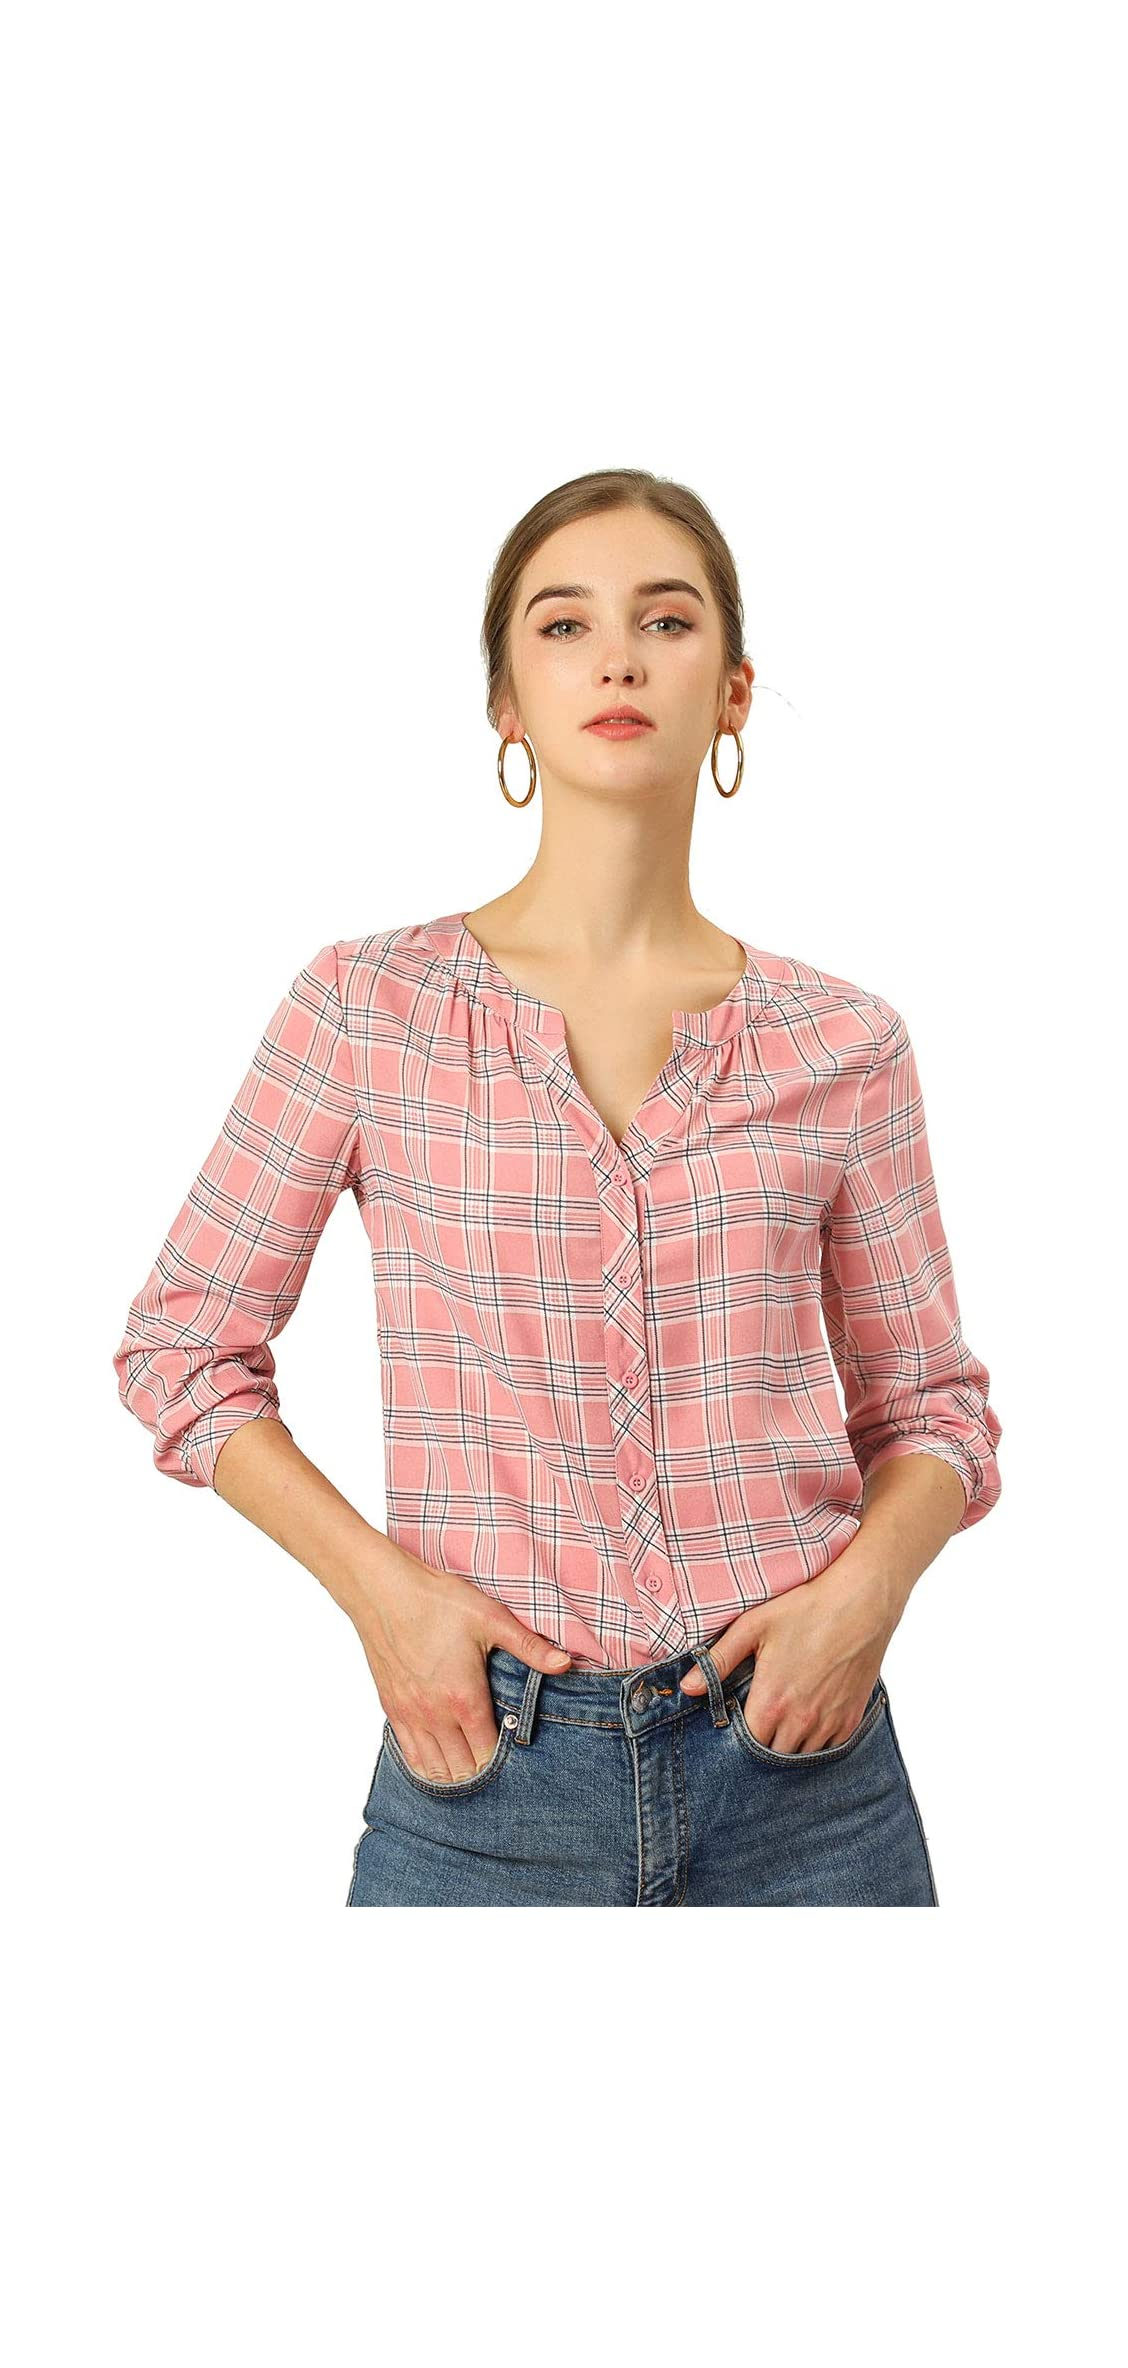 Women's Vintage Shirt Button Up Split Neck Plaid Tops